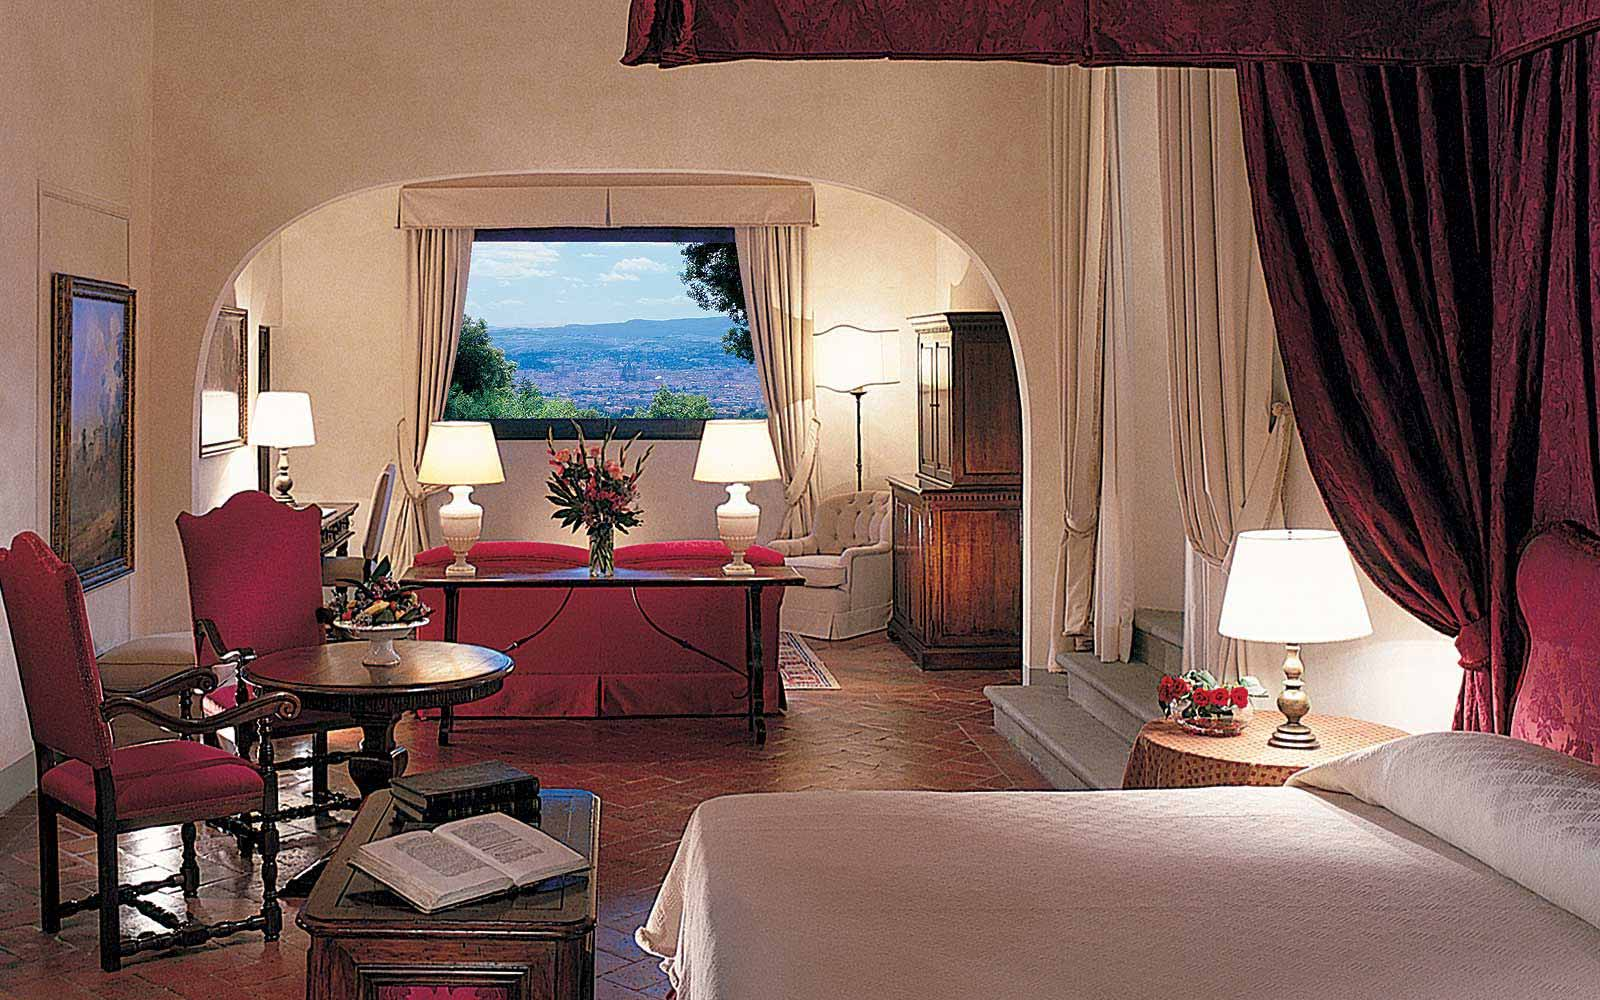 Michelangelo Suite at Belmond Villa San Michele